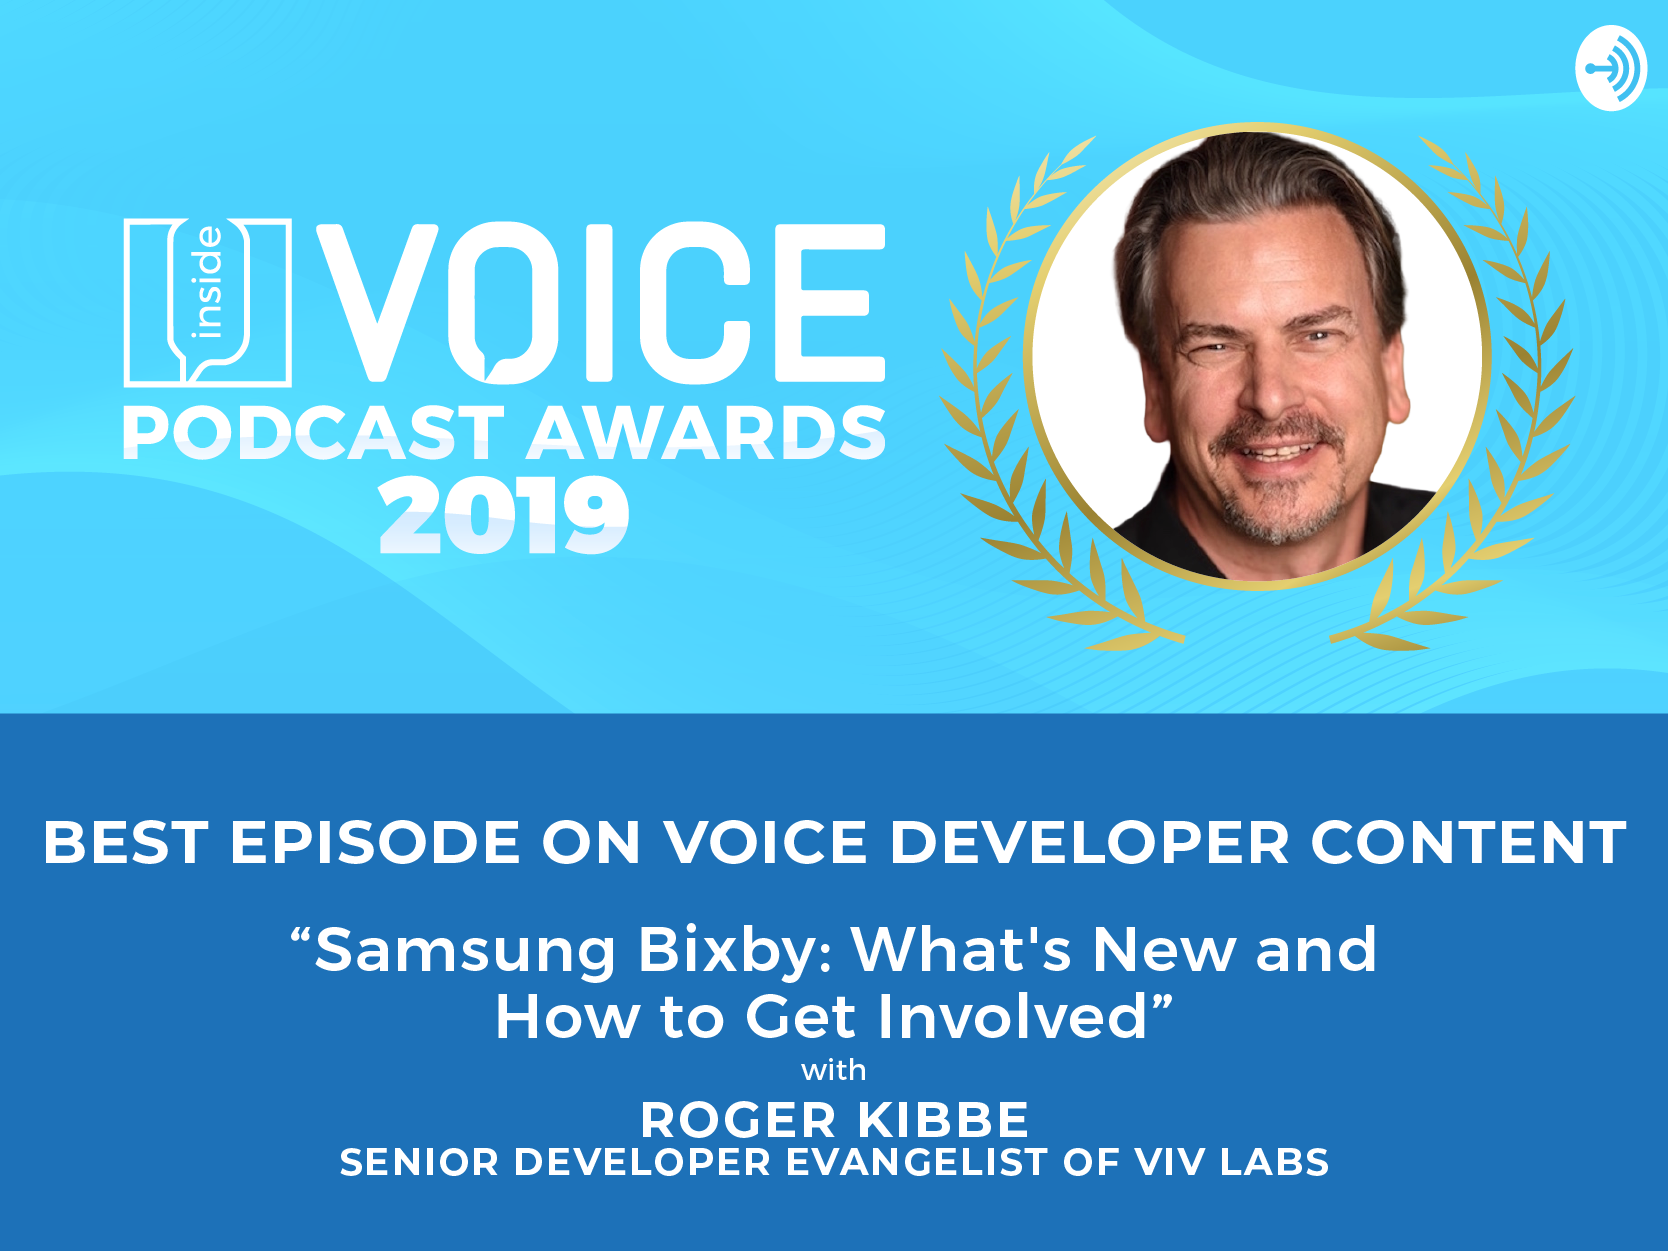 best_episode_on_voice_developer_content_podcast